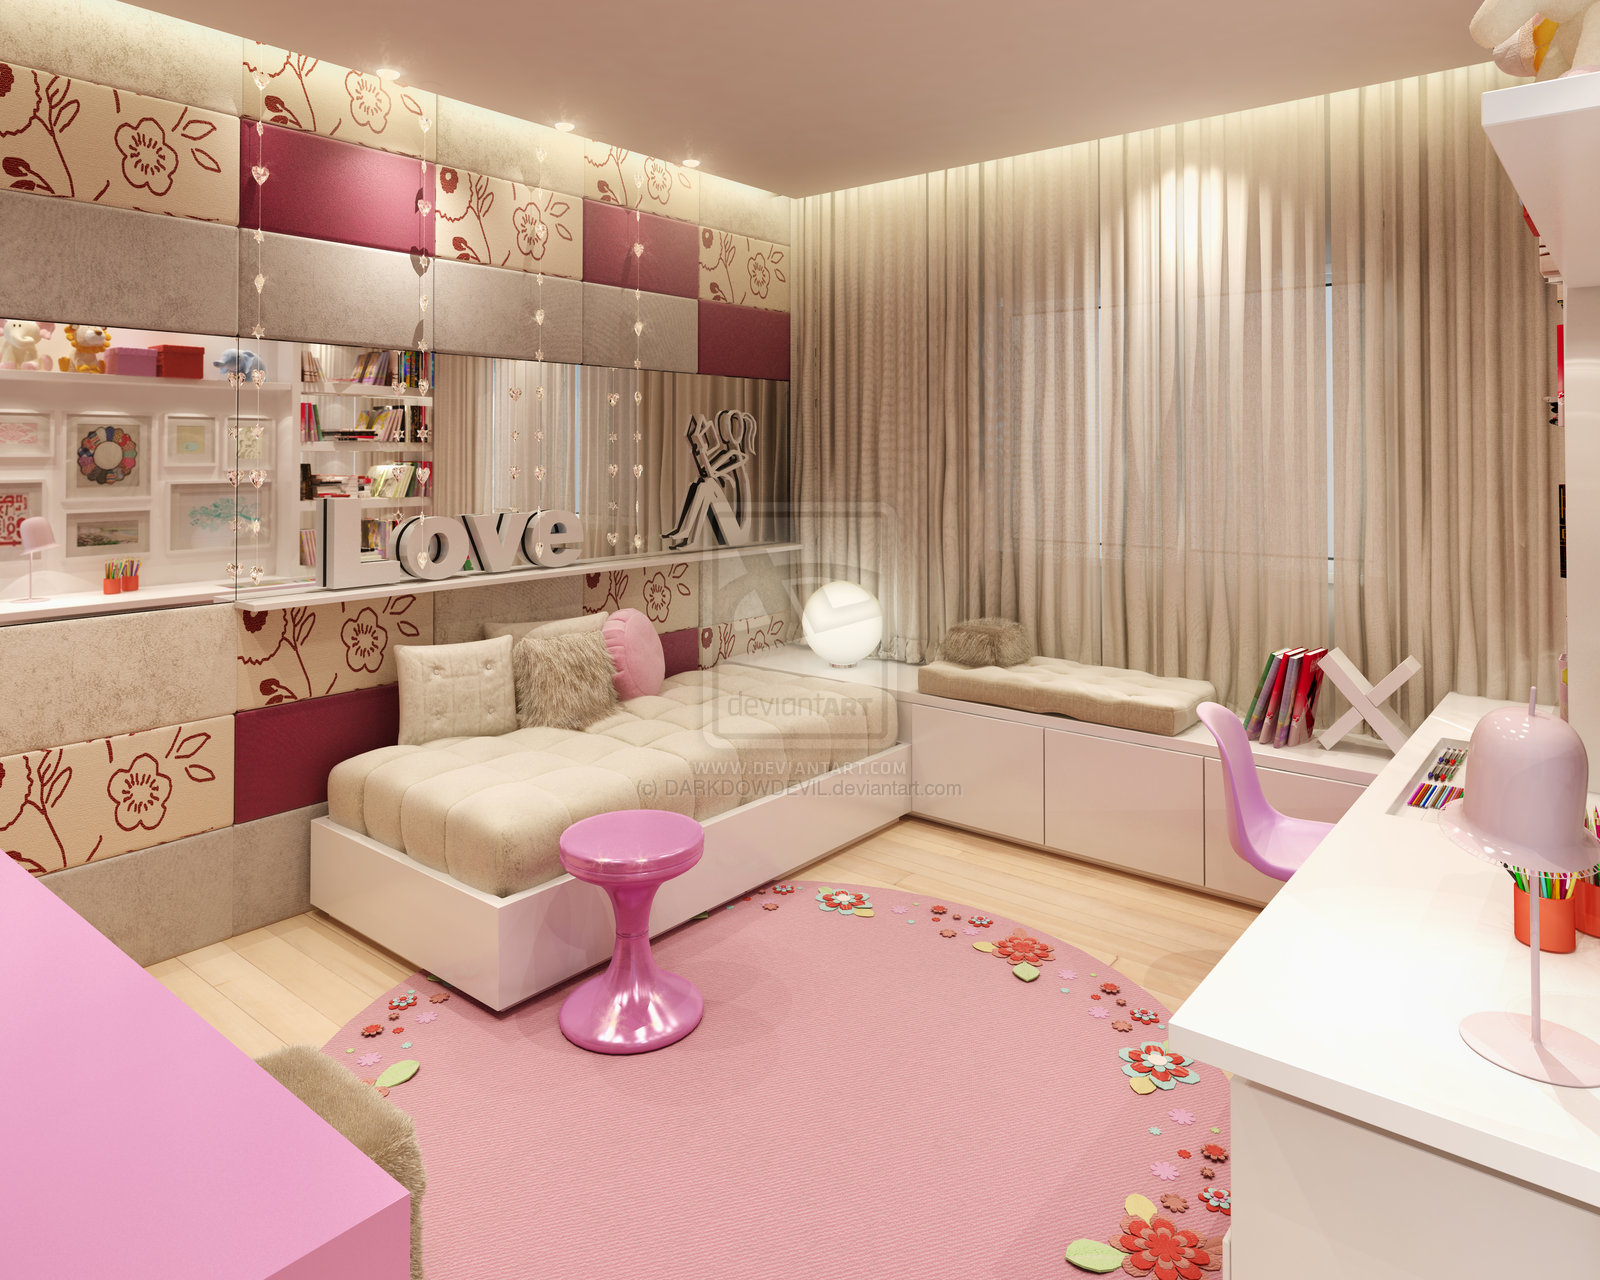 Teenage room designs - Room themes for teenage girl ...